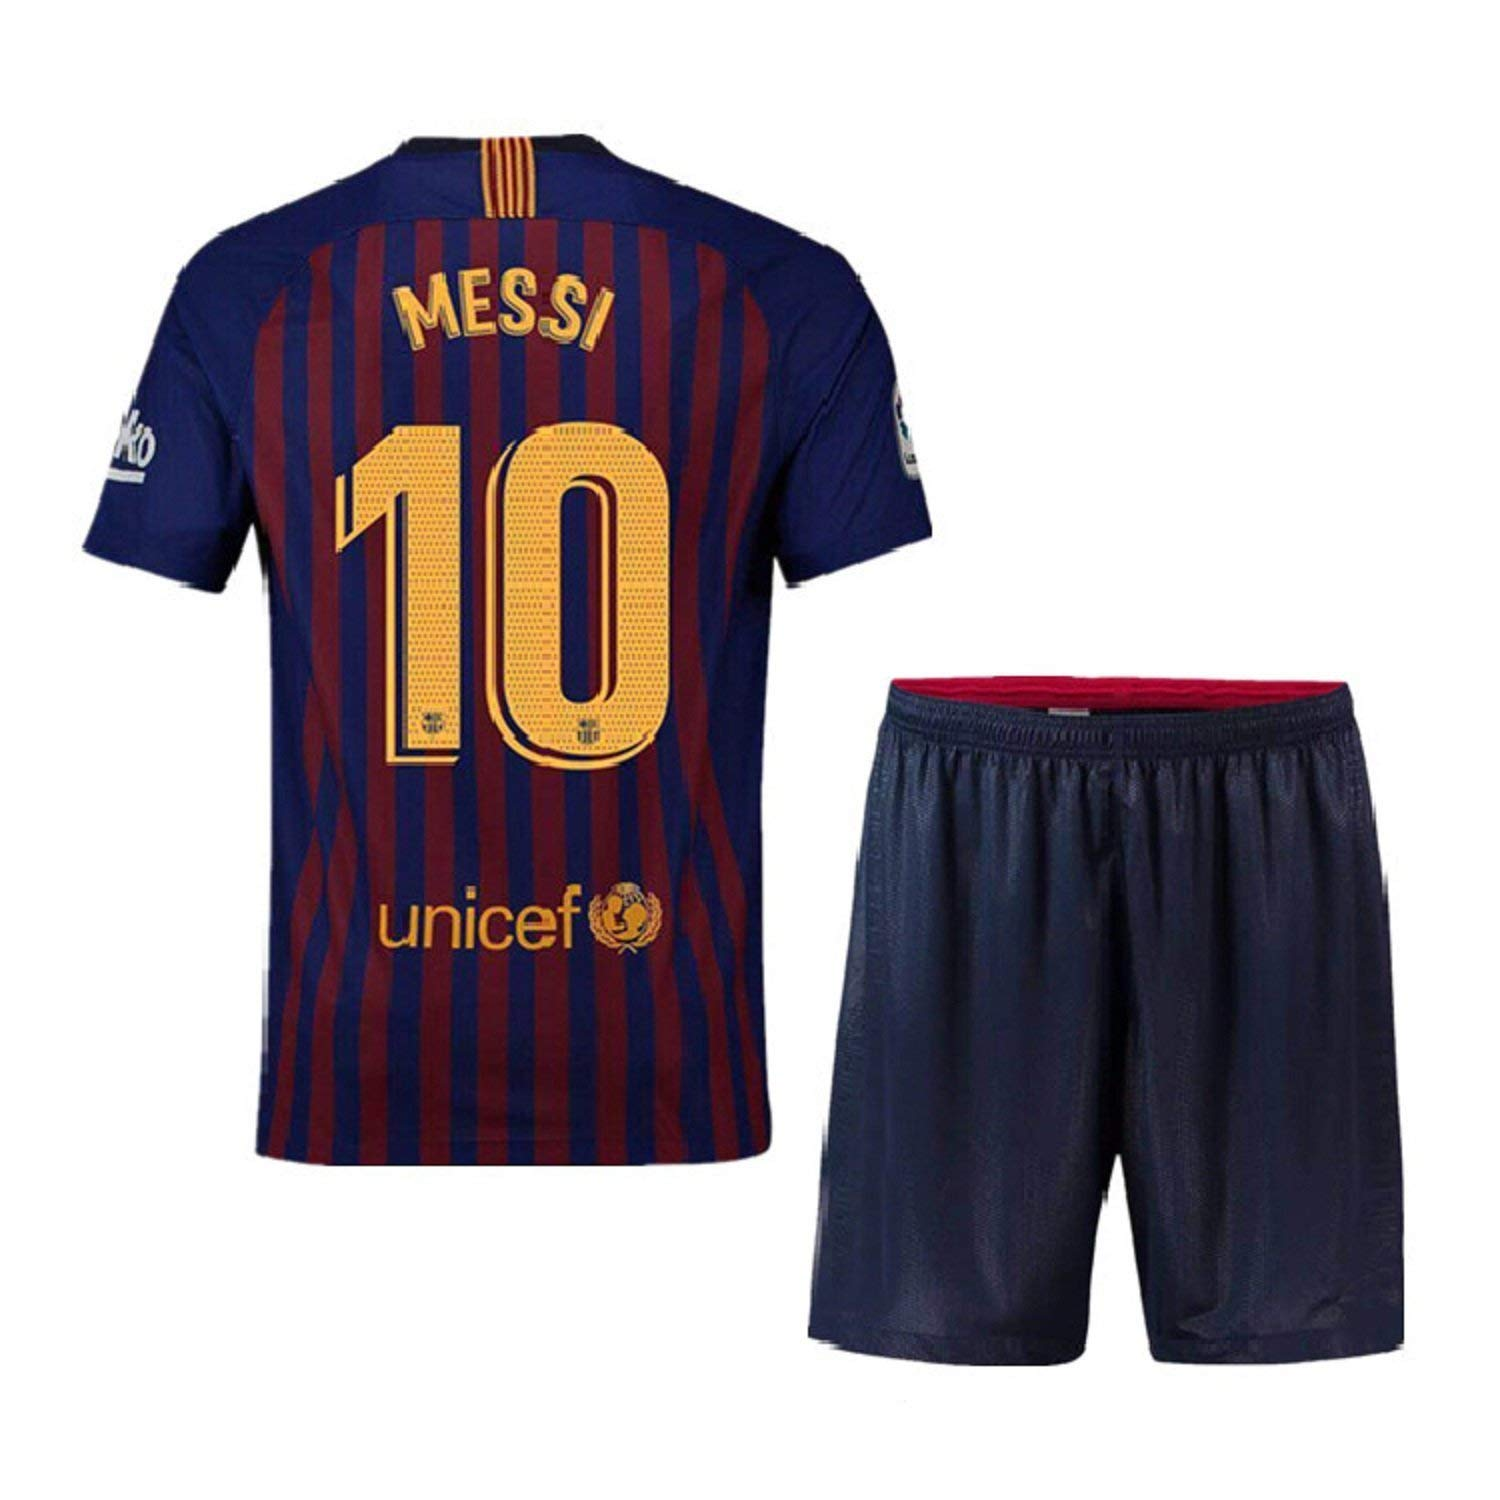 d4160d55a46 Get Quotations · Fiueker Youth Messi Jerseys Barcelona #10 Soccer Jersey  2018/2019 Home Shirt & Shorts